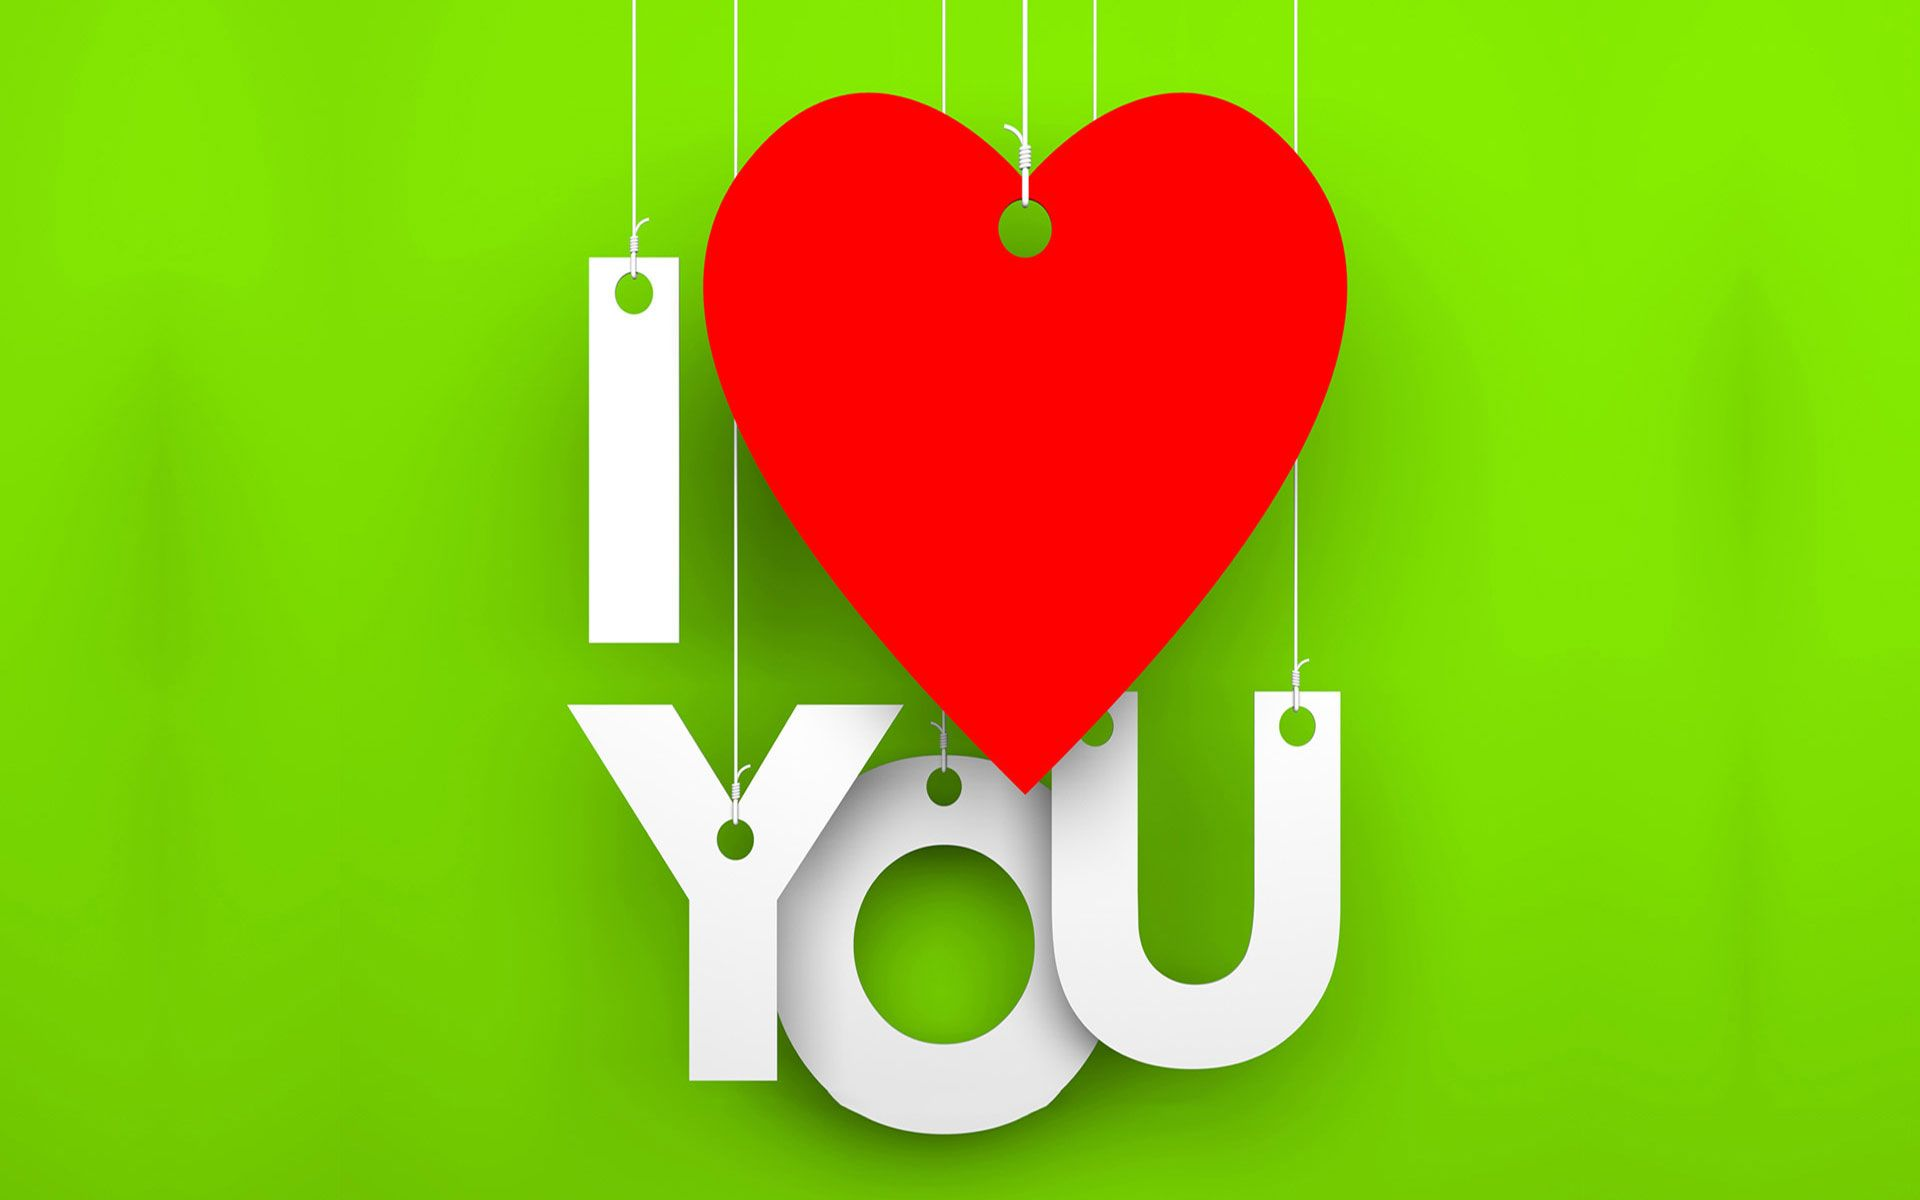 25 Free Hd I Love You Wallpapers Cute I Love You Images I Love You Images I Love You Pictures Love You Images